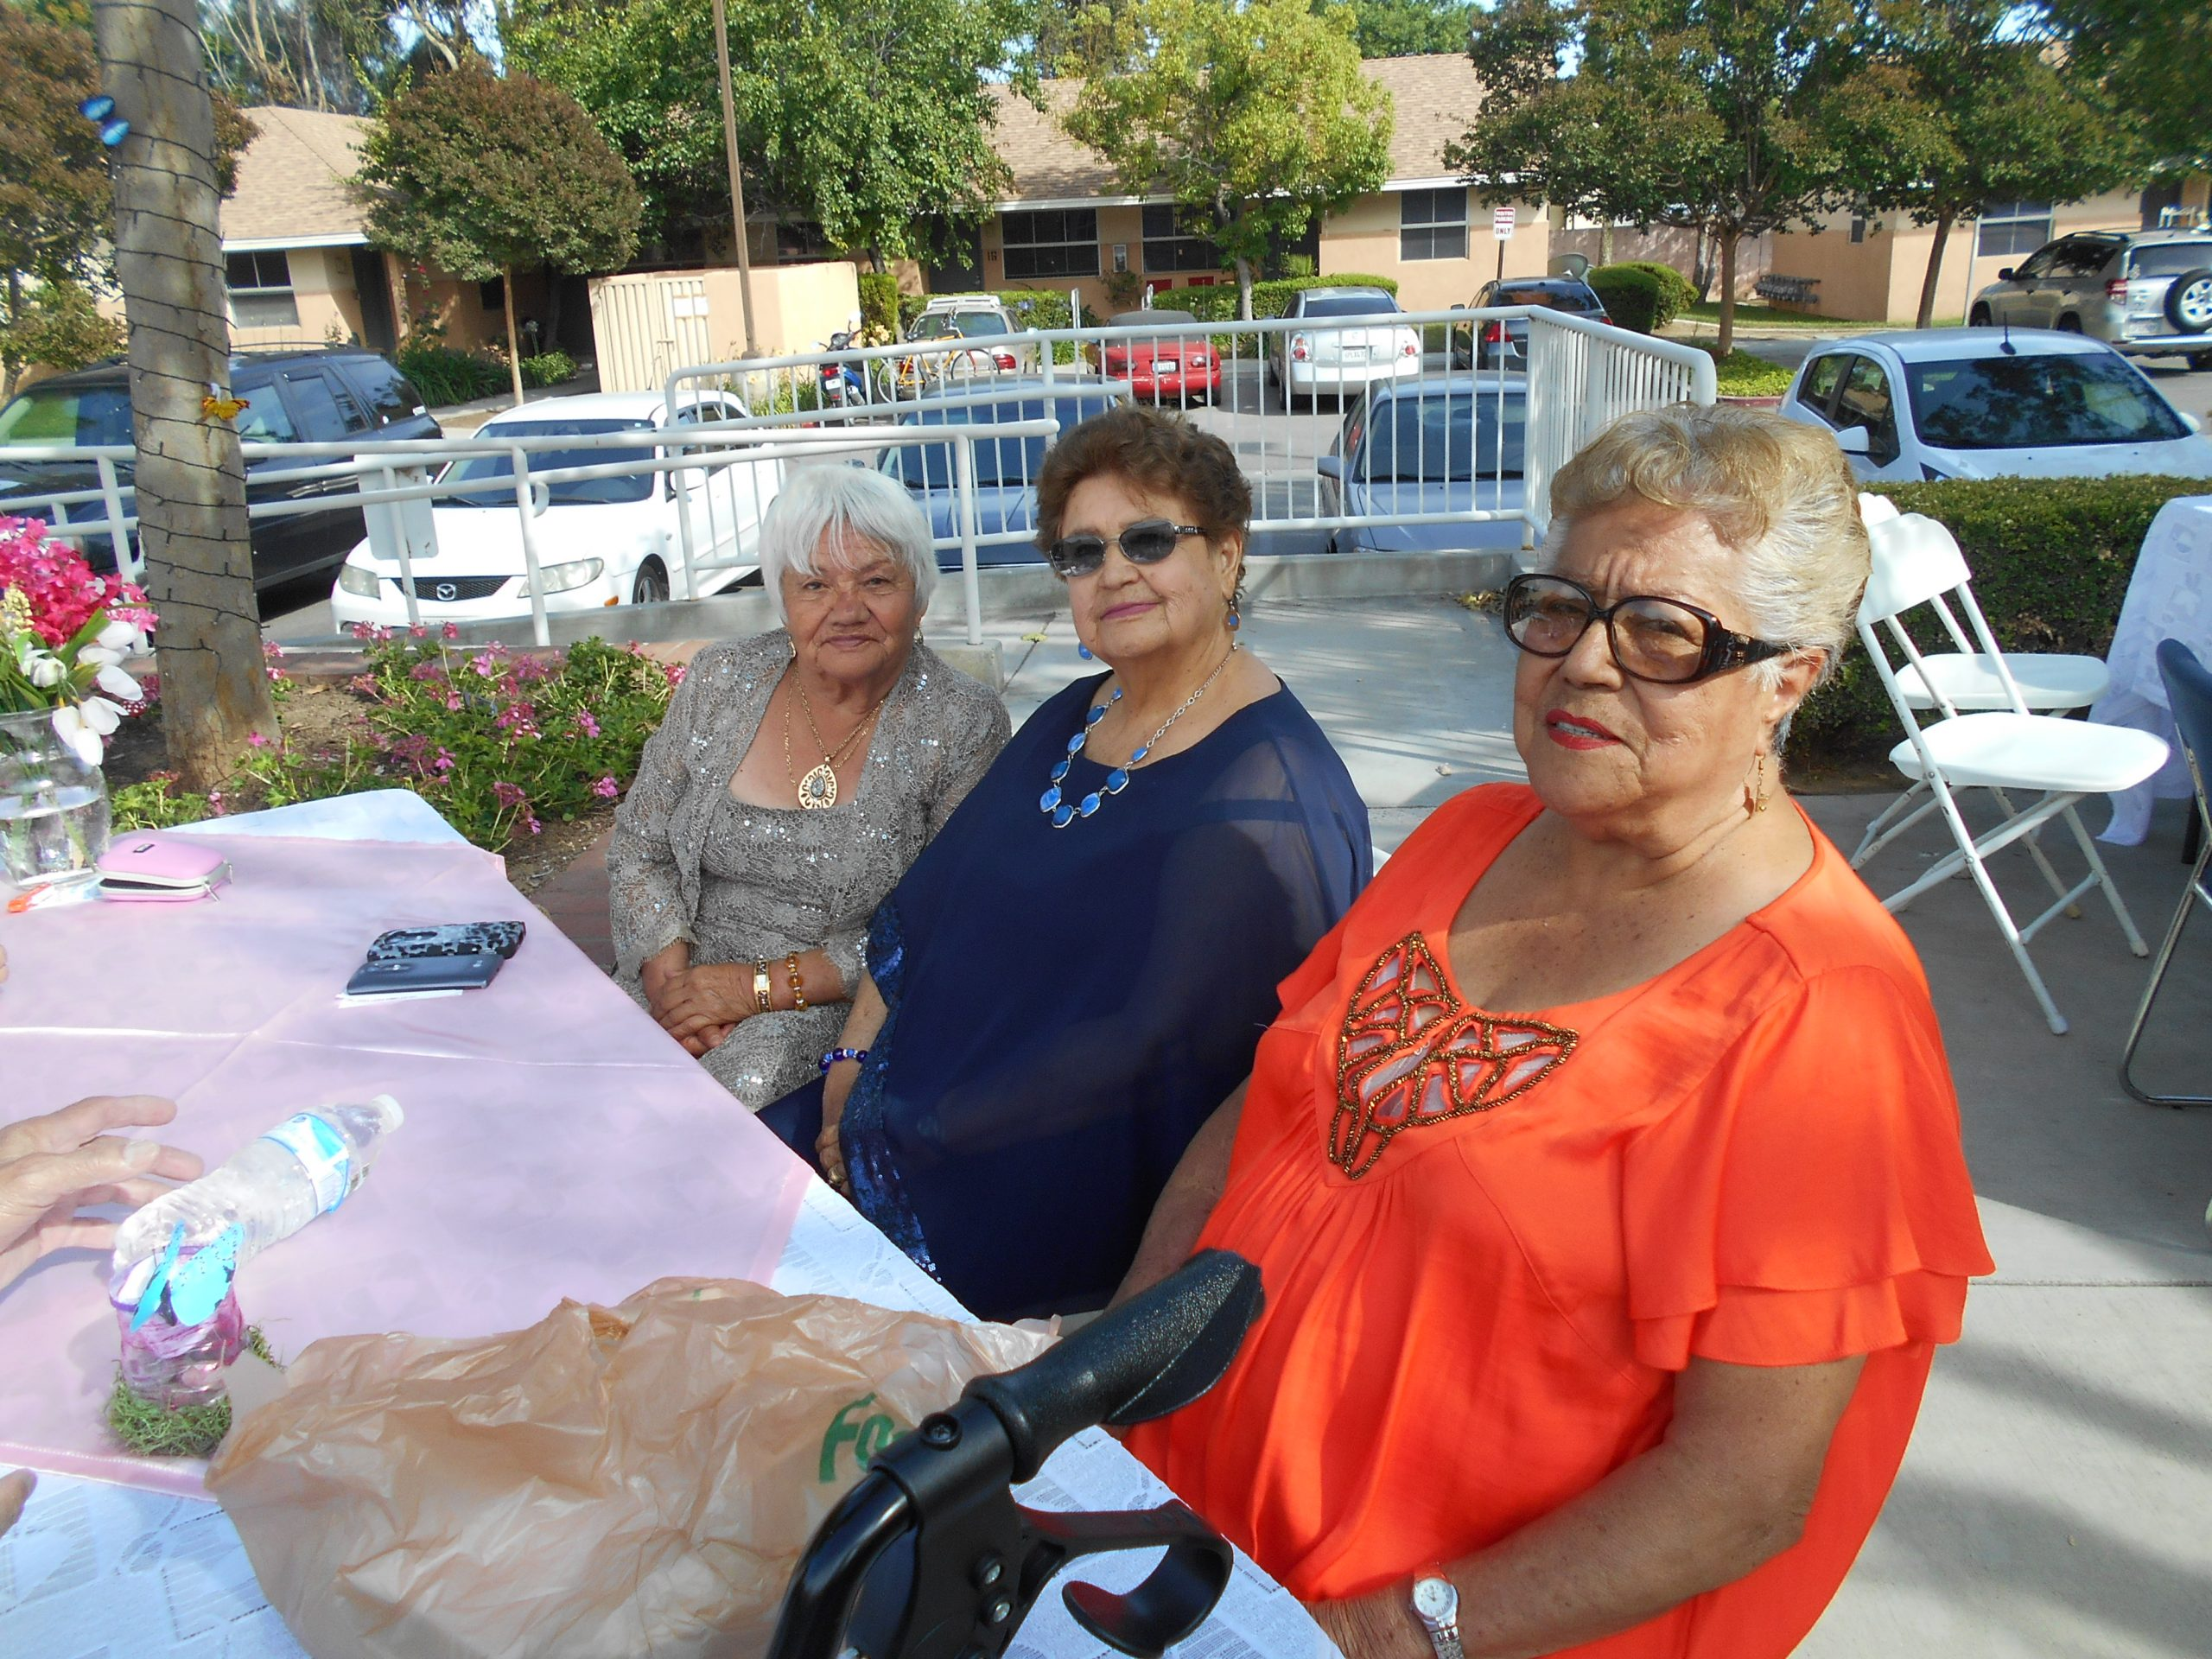 Photo of three women residents sitting outside at an event at Cambridge Gardens senior housing community.